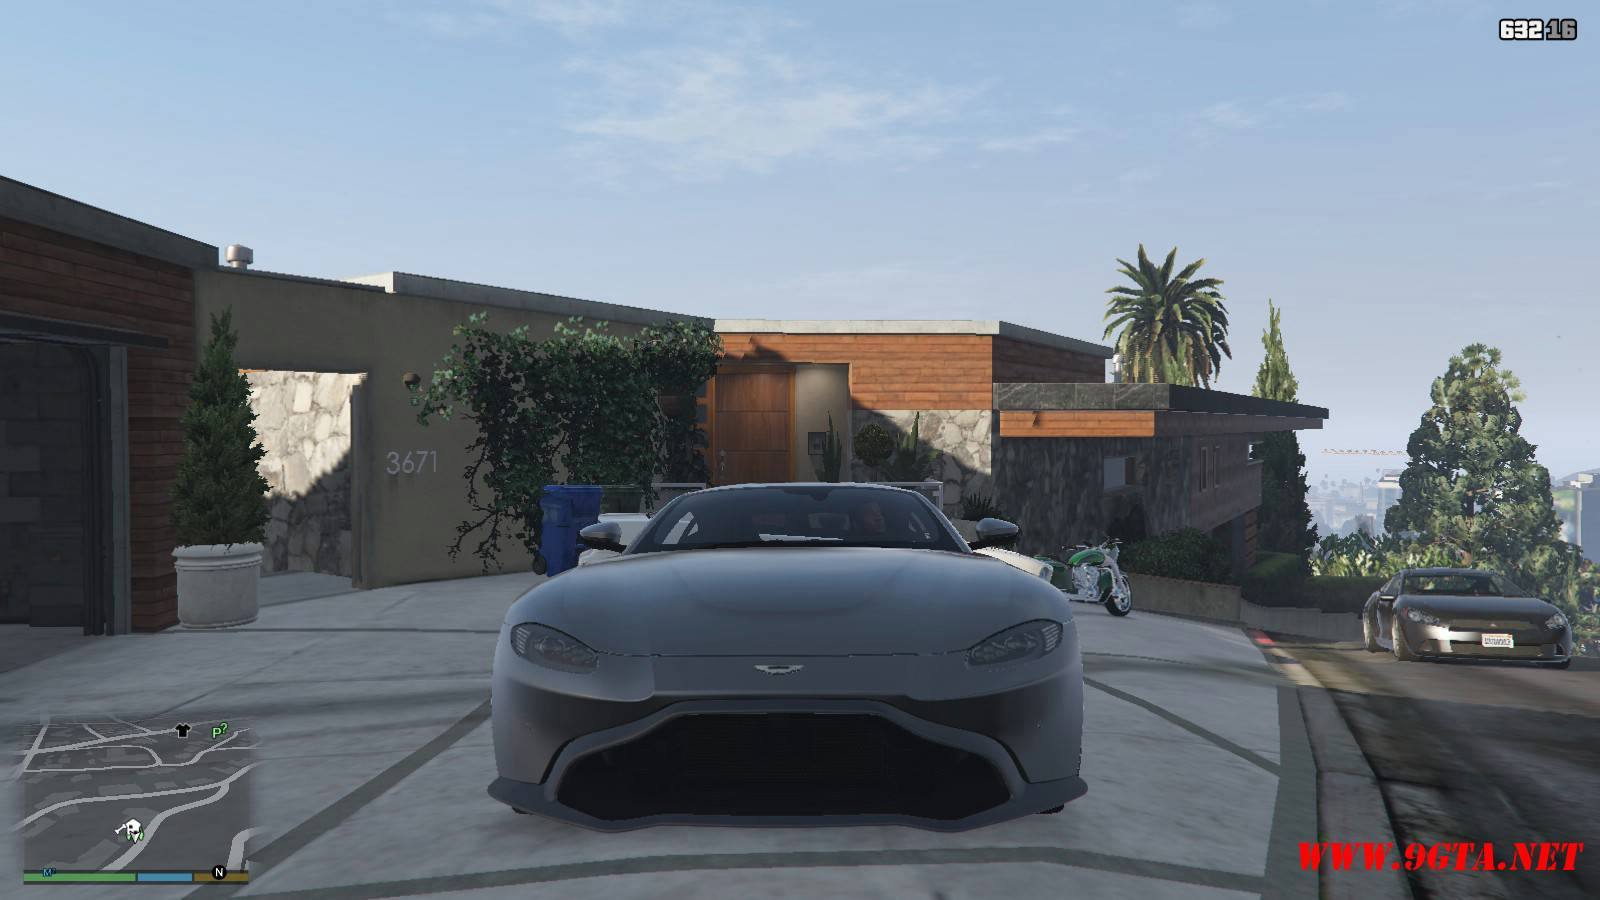 2019 Aston Martin Vantage v3.0 Mod For GTA5 (10)